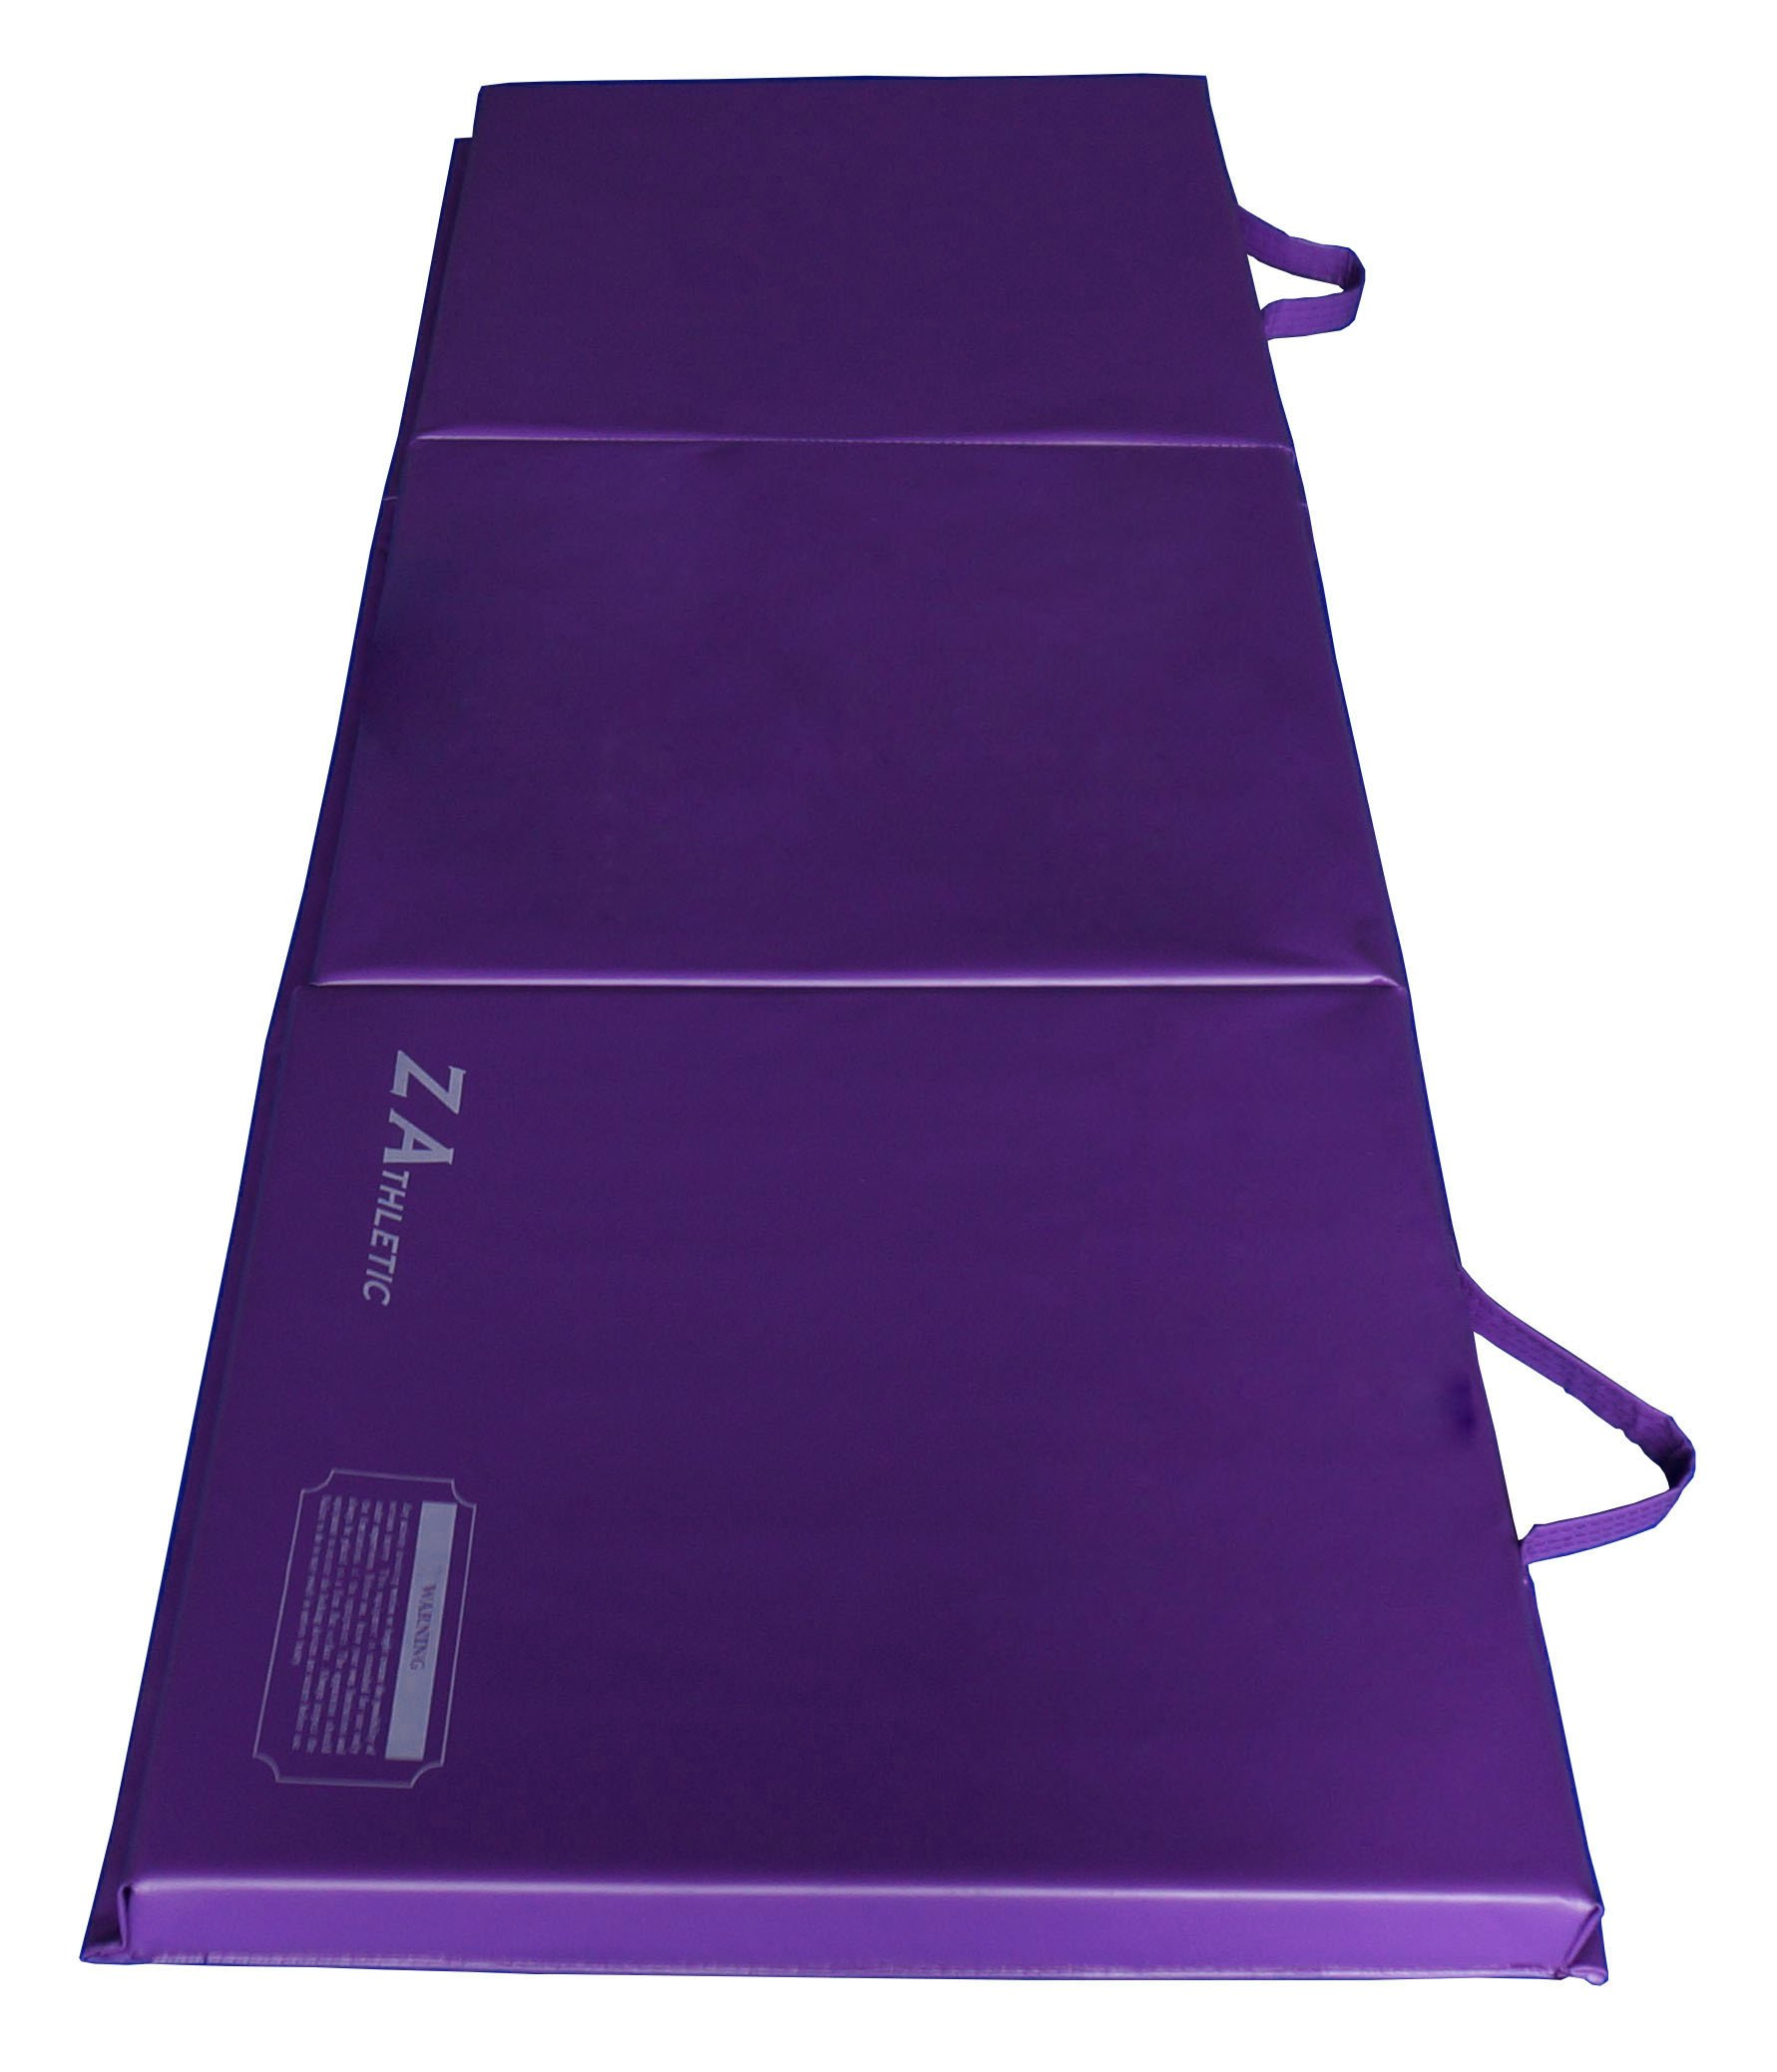 Z-Athletic Folding Panel Mats for Gymnastics, Yoga, Martial Arts, & Tumbling (2ft x 6ft x 2in, Purple)